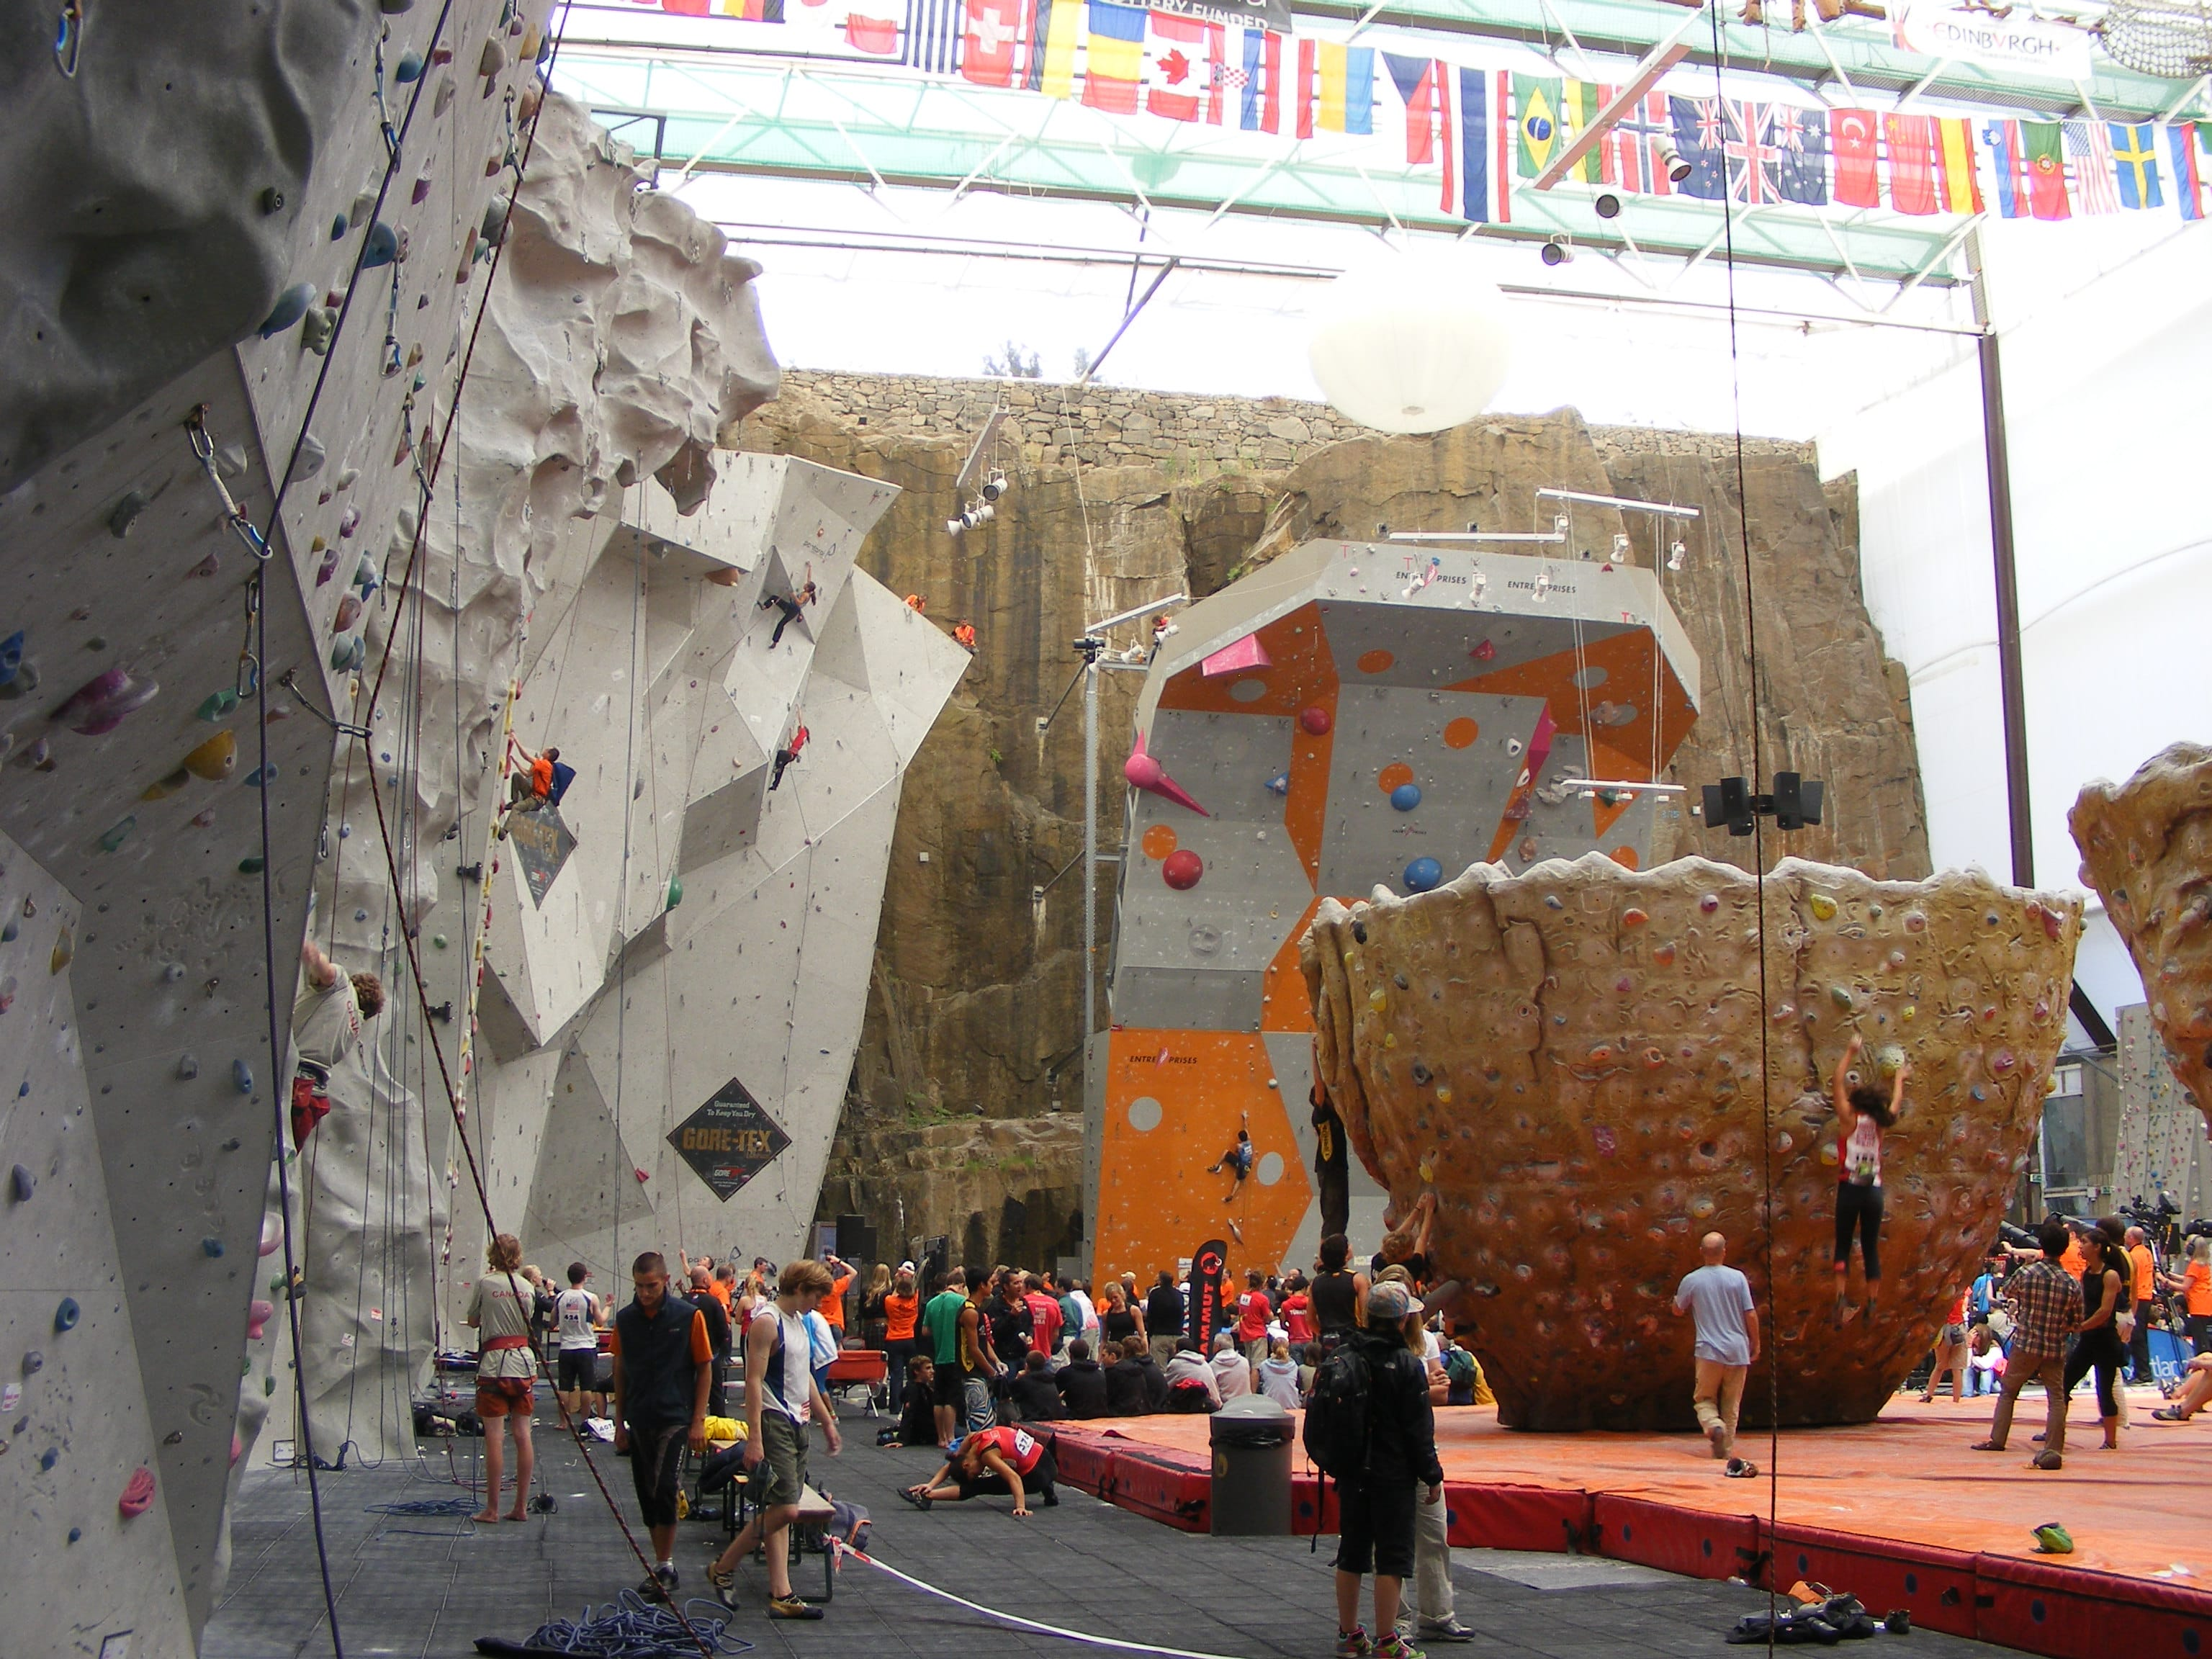 Edinburgh_International_Climbing_Arena_2010_292-min